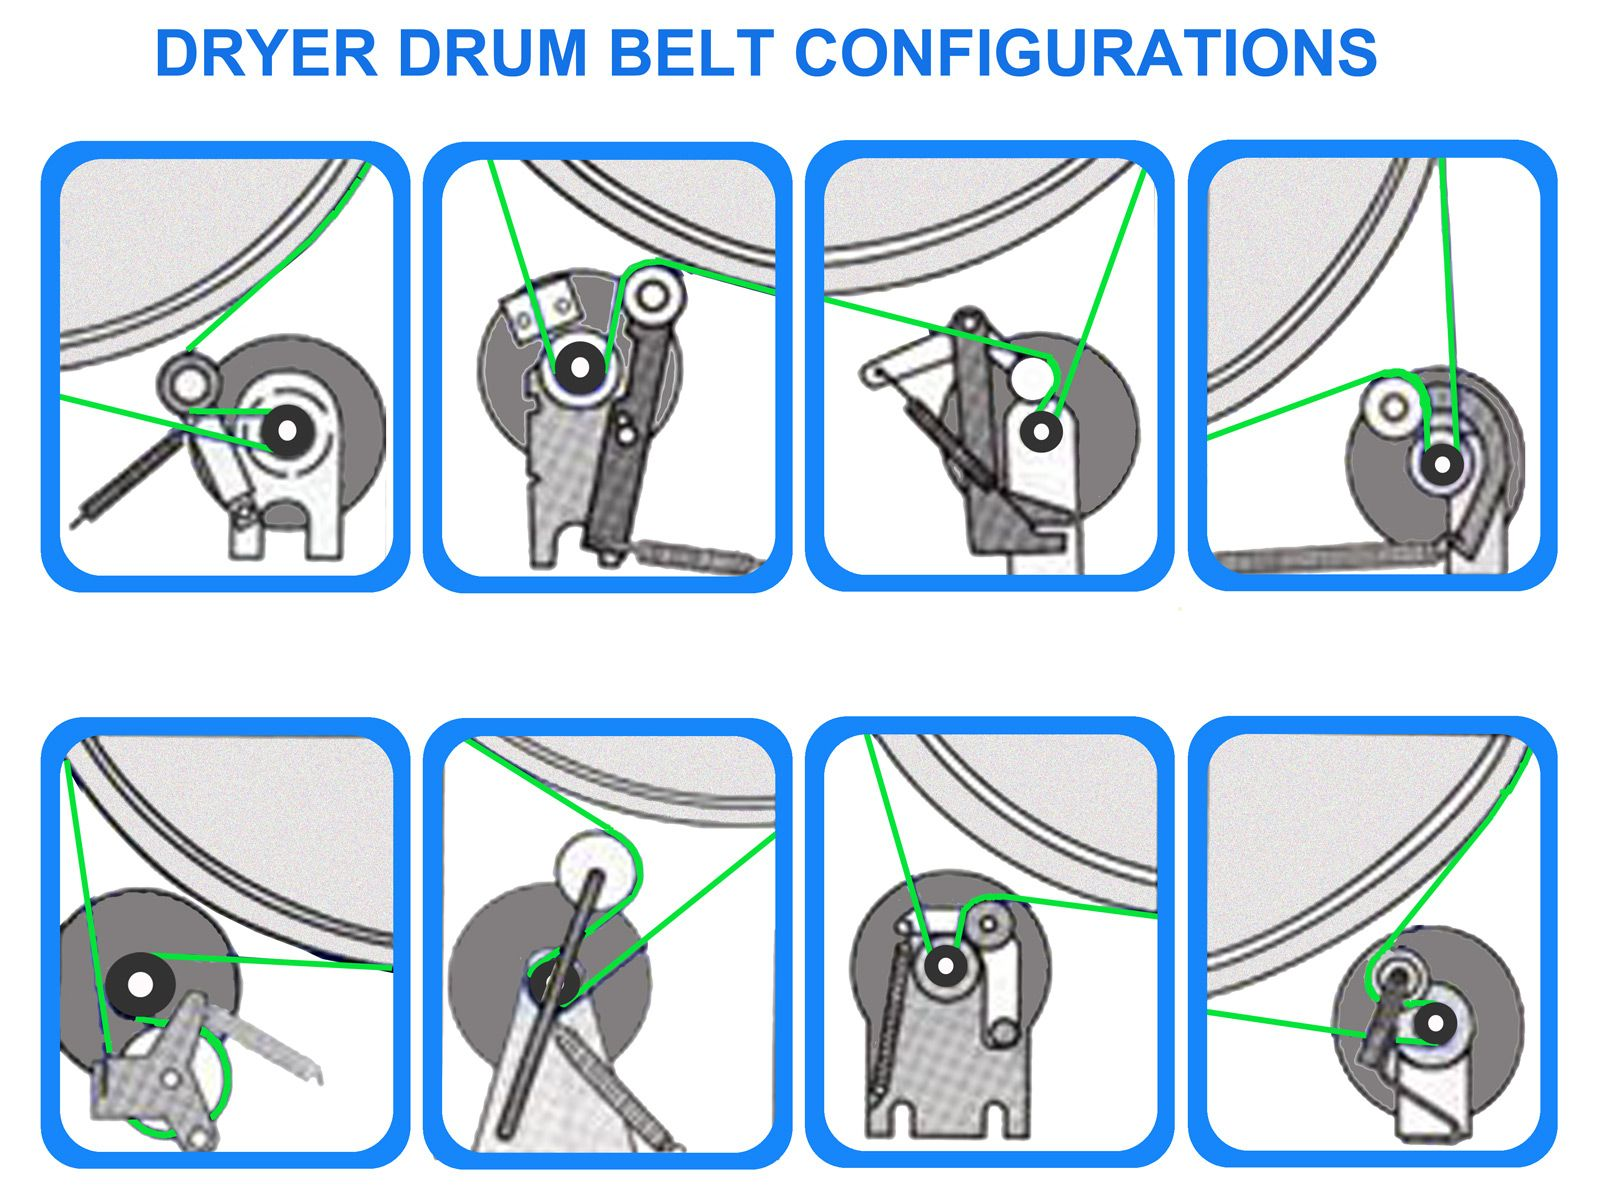 Dryer Belt Puiiey Configurations